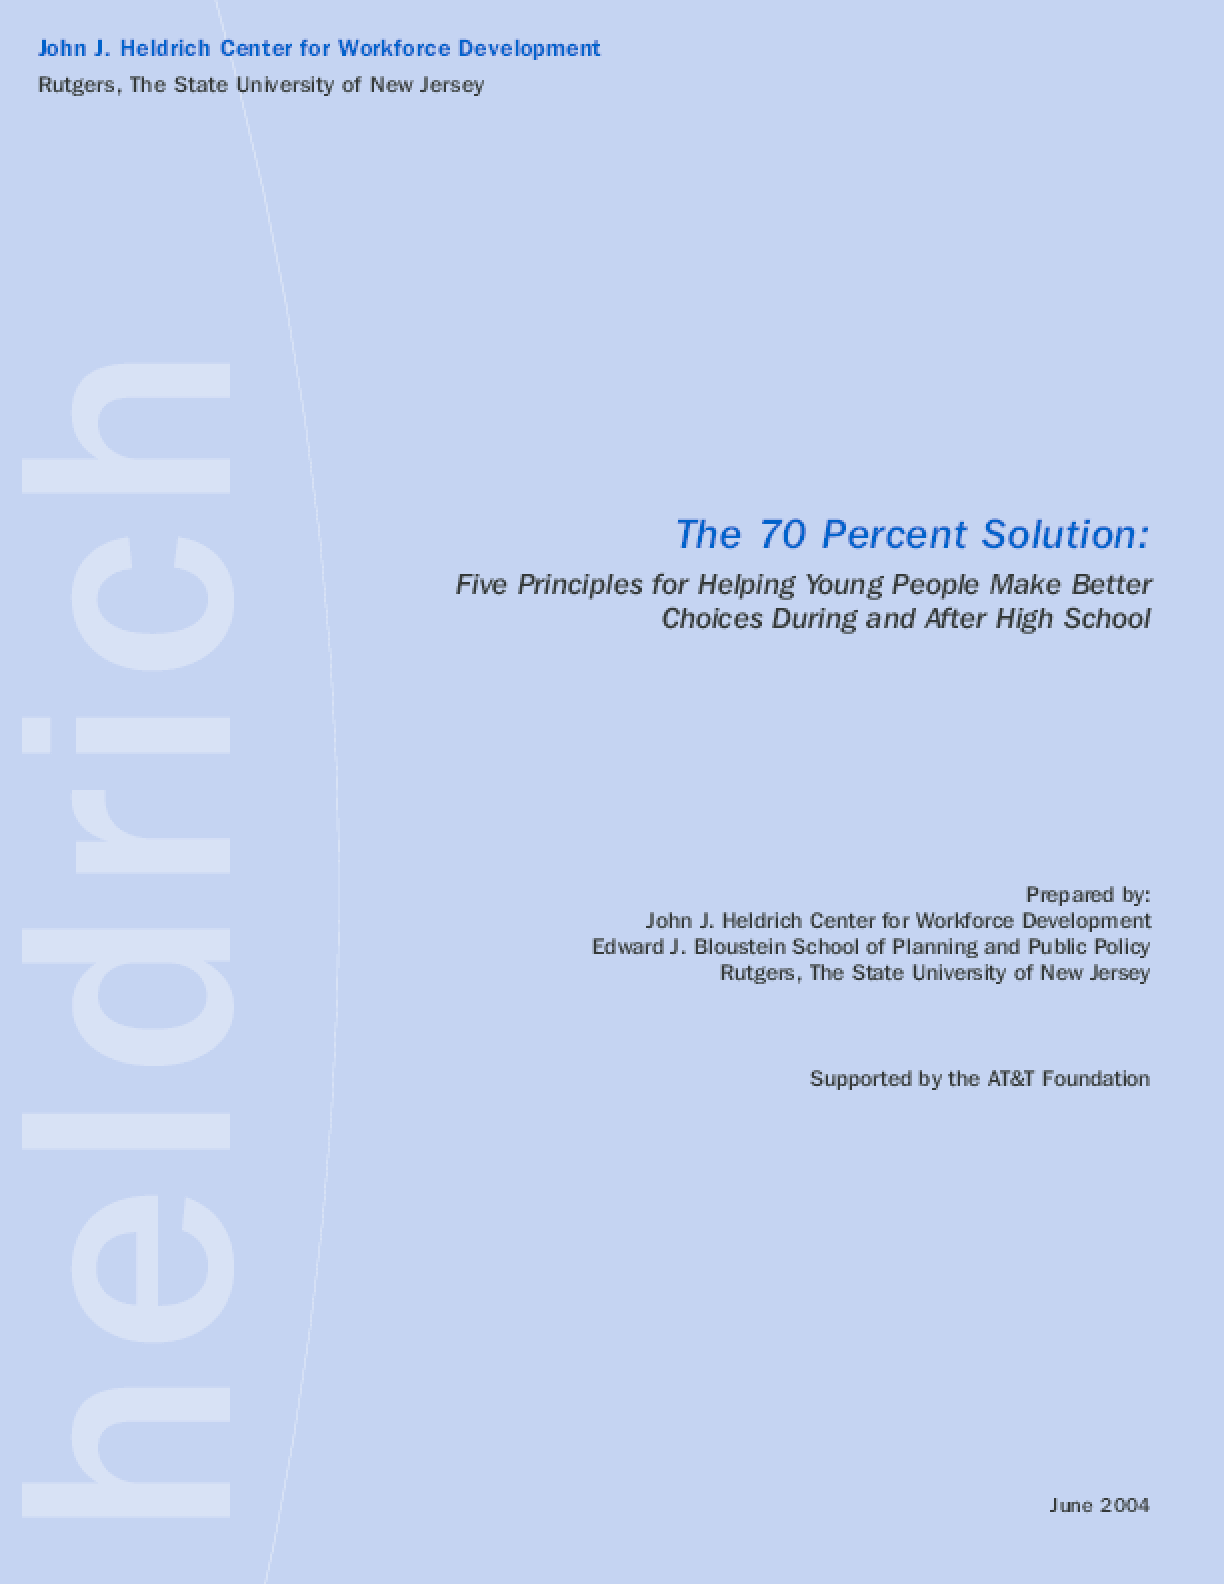 The 70 Percent Solution: Five Principles for Helping Young People Make Decisions During and After High School